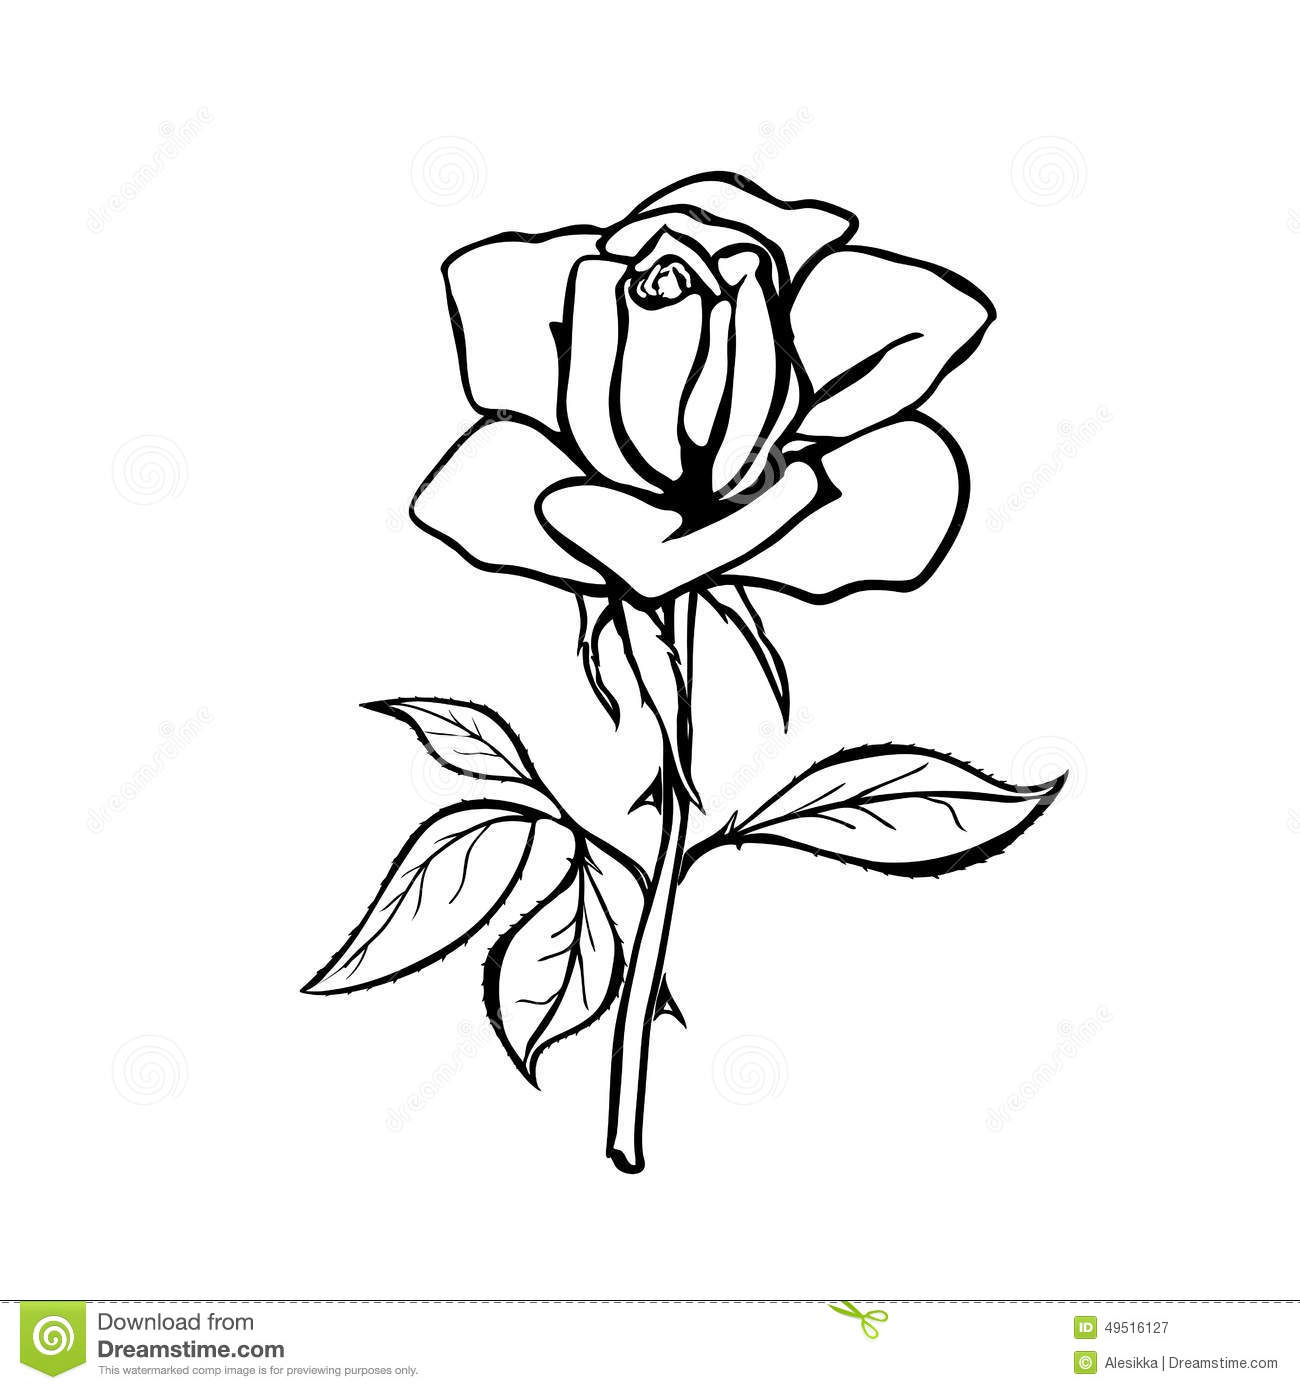 Realistic Rose Drawing Outline